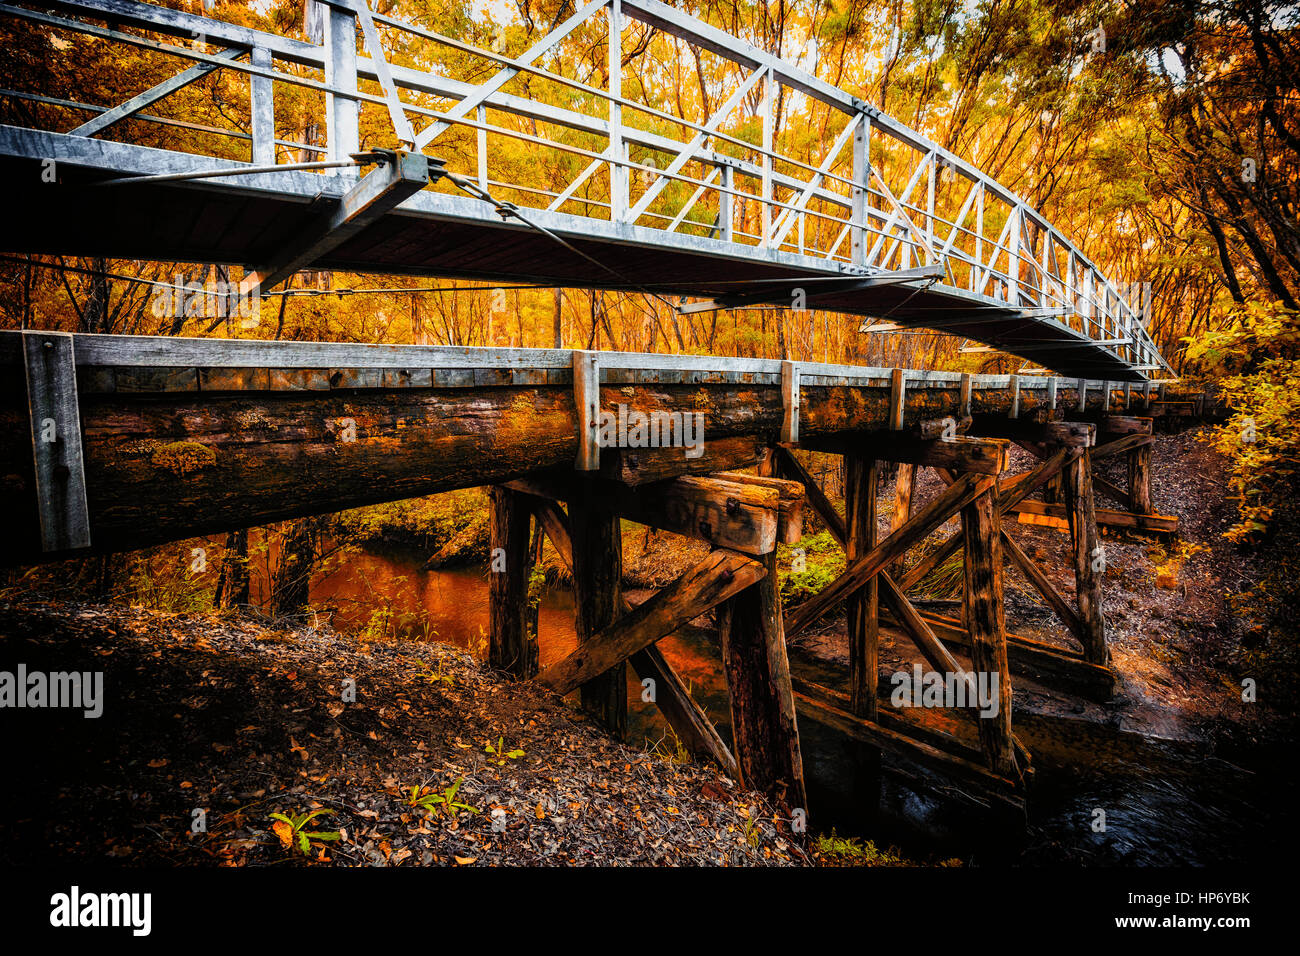 Wooden Bridge In Autumn - Stock Image